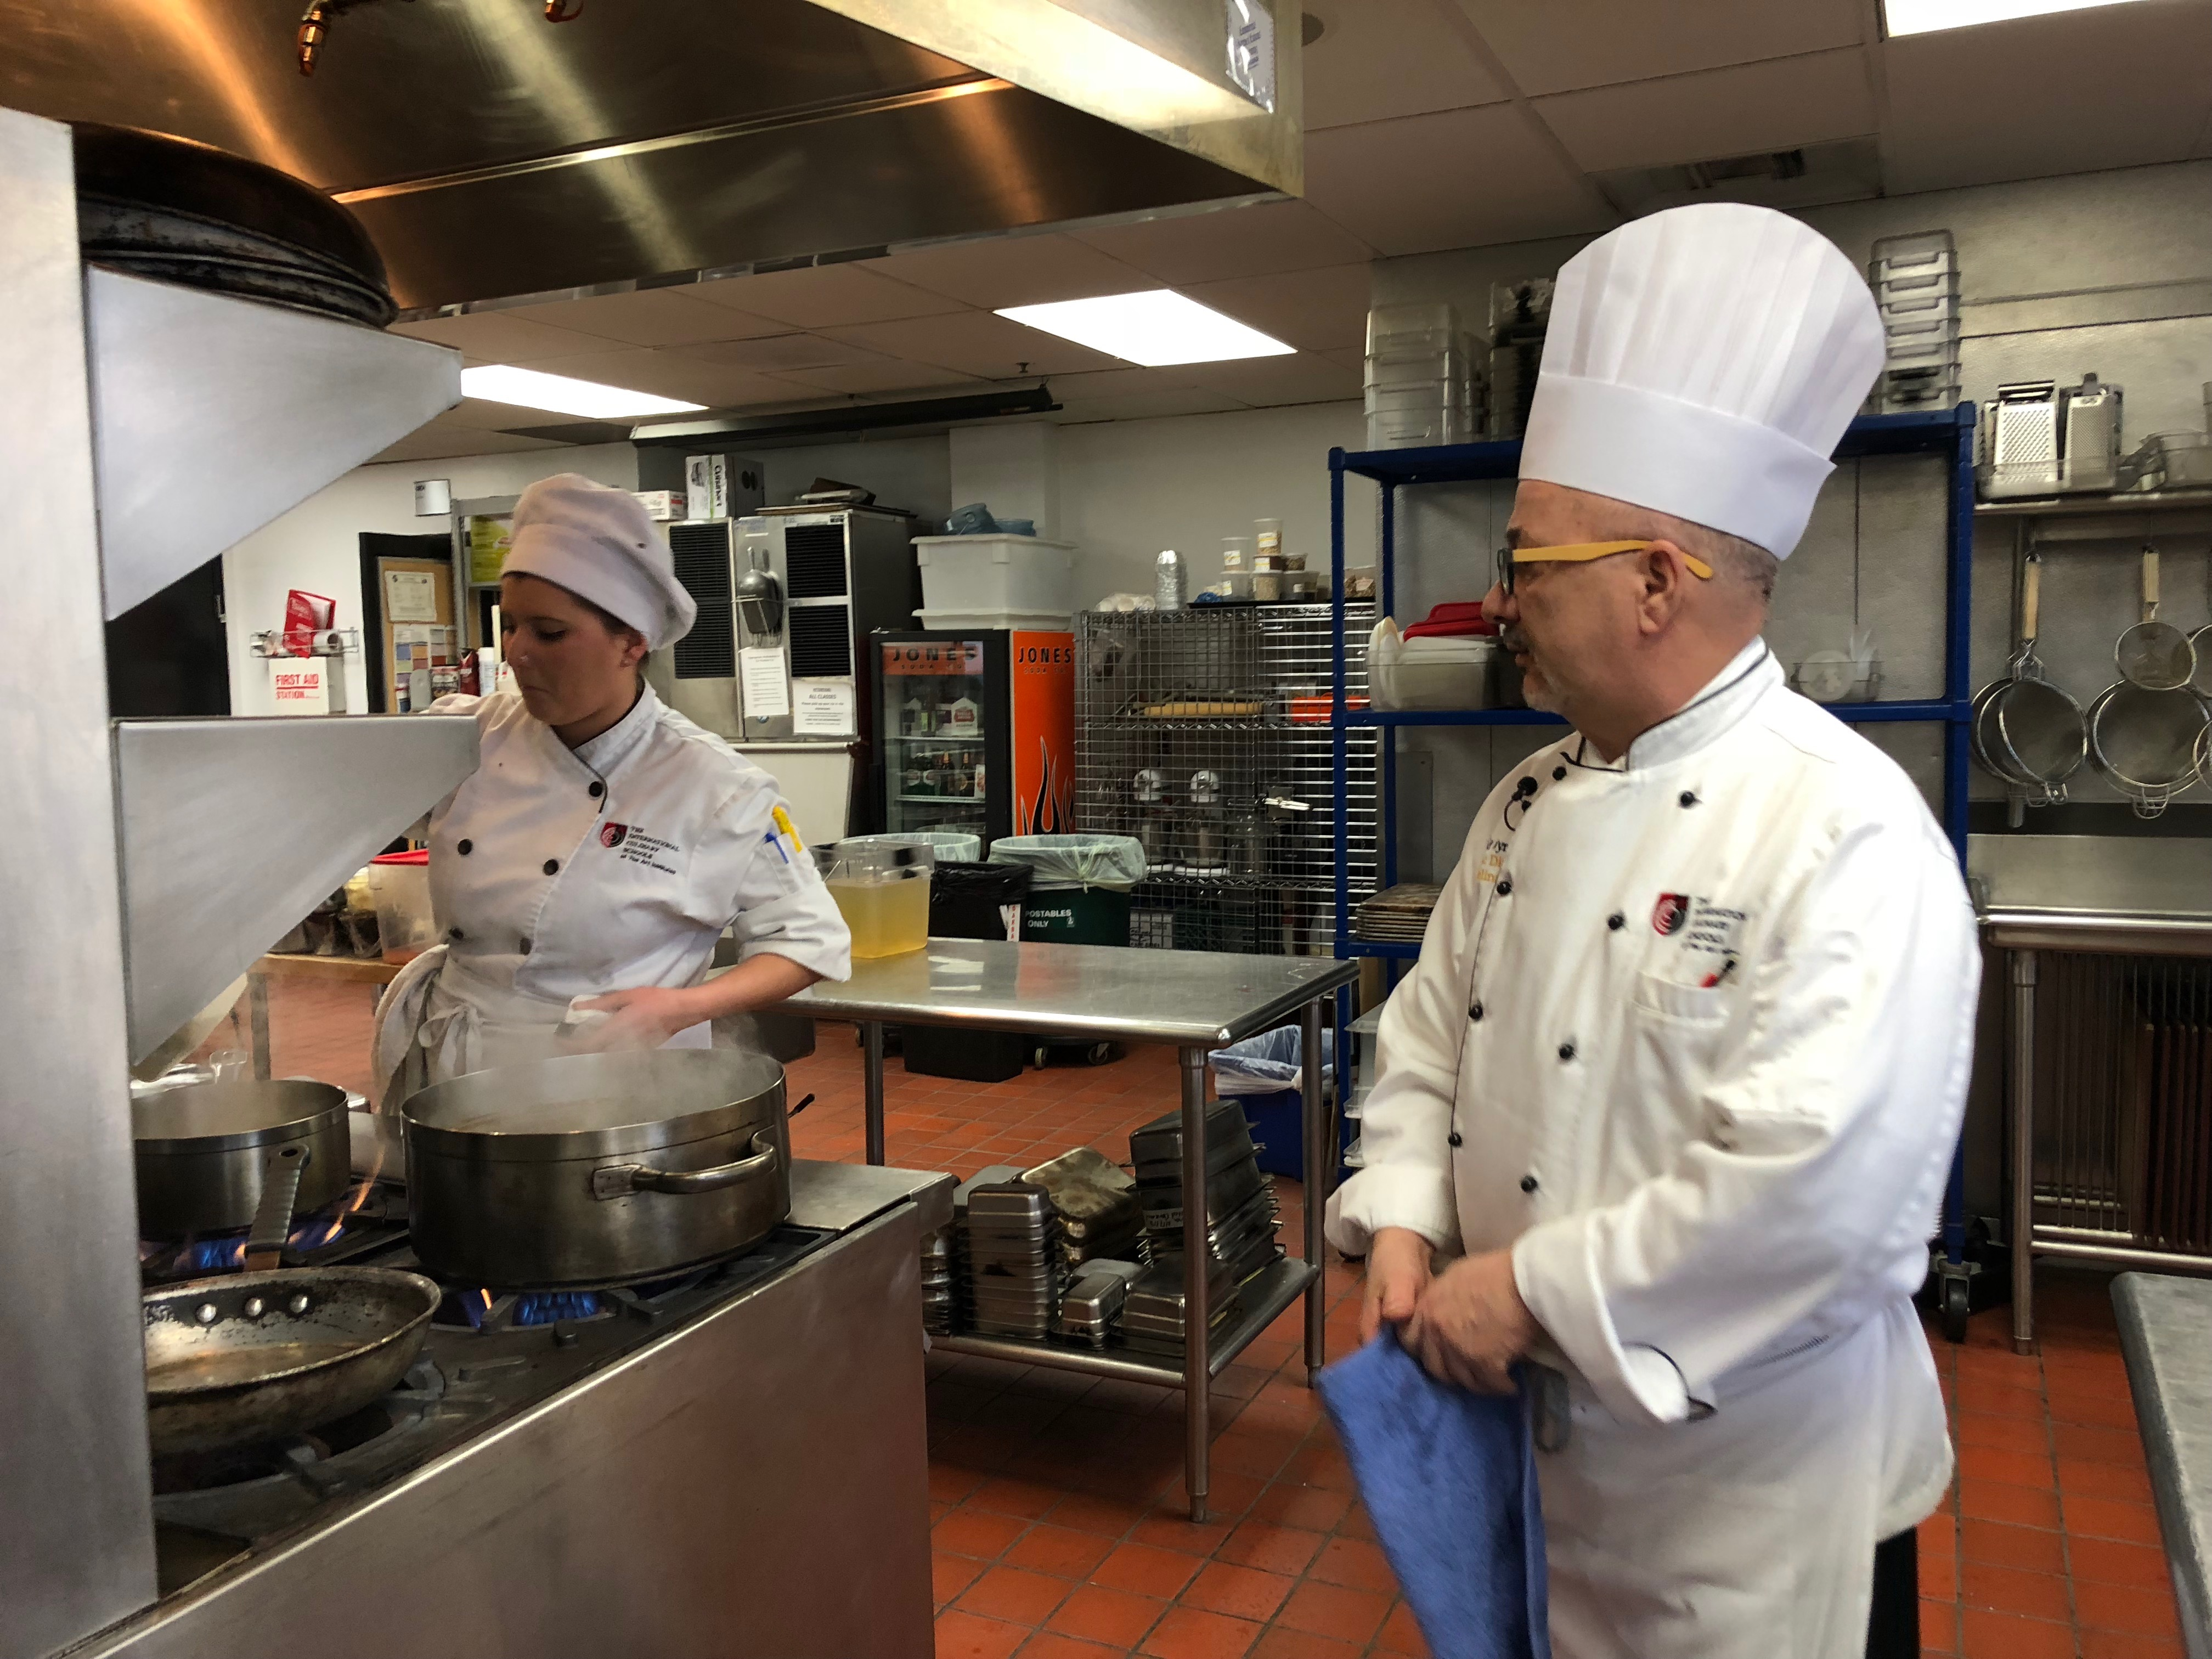 Chef David Wynne is Chef Instructor at Art Institute of Seattle's Portfolio Restaurant. He runs the kitchen here with military like precision-- and a combination of toughness and TLC. Students get the opportunity to learn all about culinary arts from the kitchen to the restaurant. (Seattle Refined)<p></p><p></p>